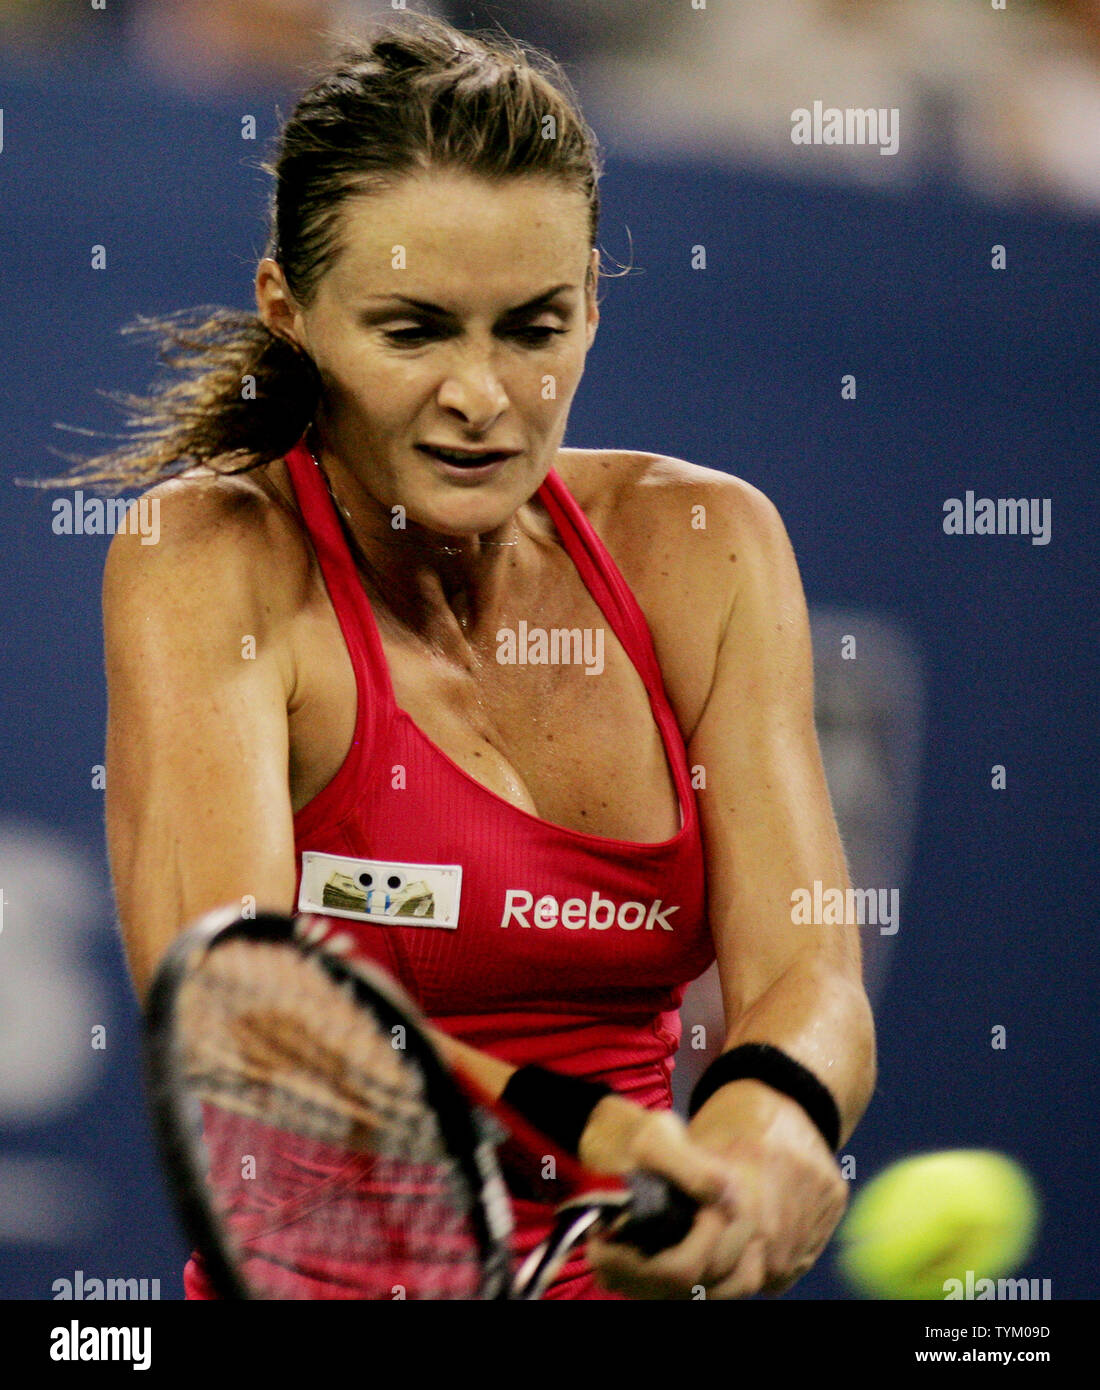 Iveta Benesova of the Czech Republic returns the ball to Maria Sharapova of Russia during second-round action at the U.S. Open held at the National Tennis Center on September 2, 2010 in New York.     UPI Photo/Monika Graff... - Stock Image